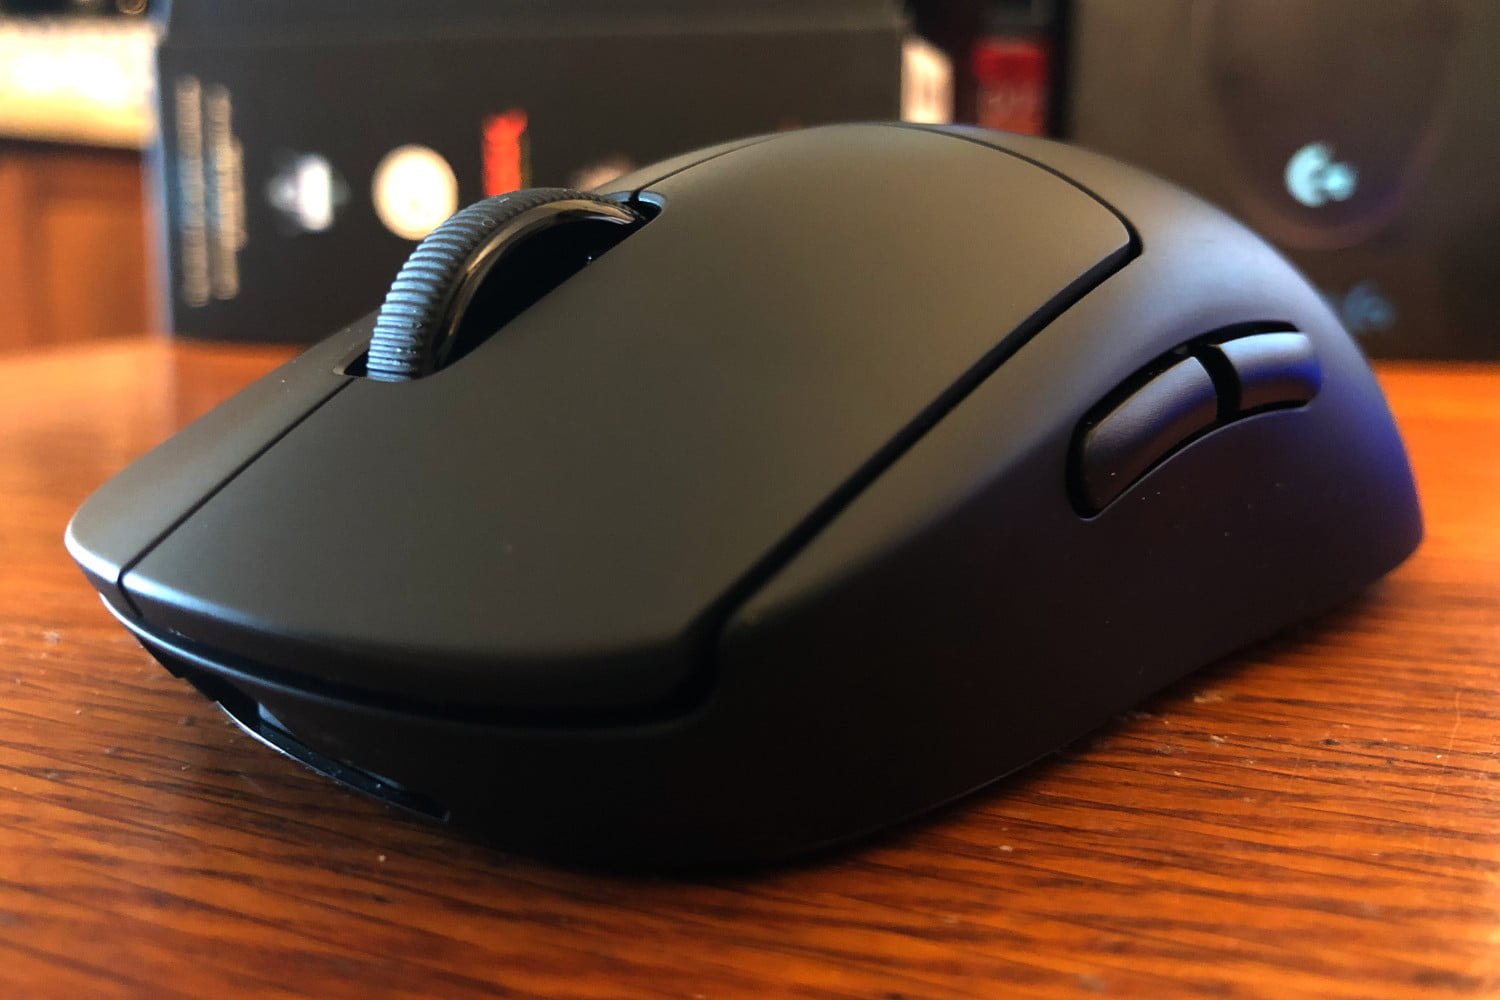 Logitech G Pro Hero Gaming Mouse Review: Familiar Looks, New